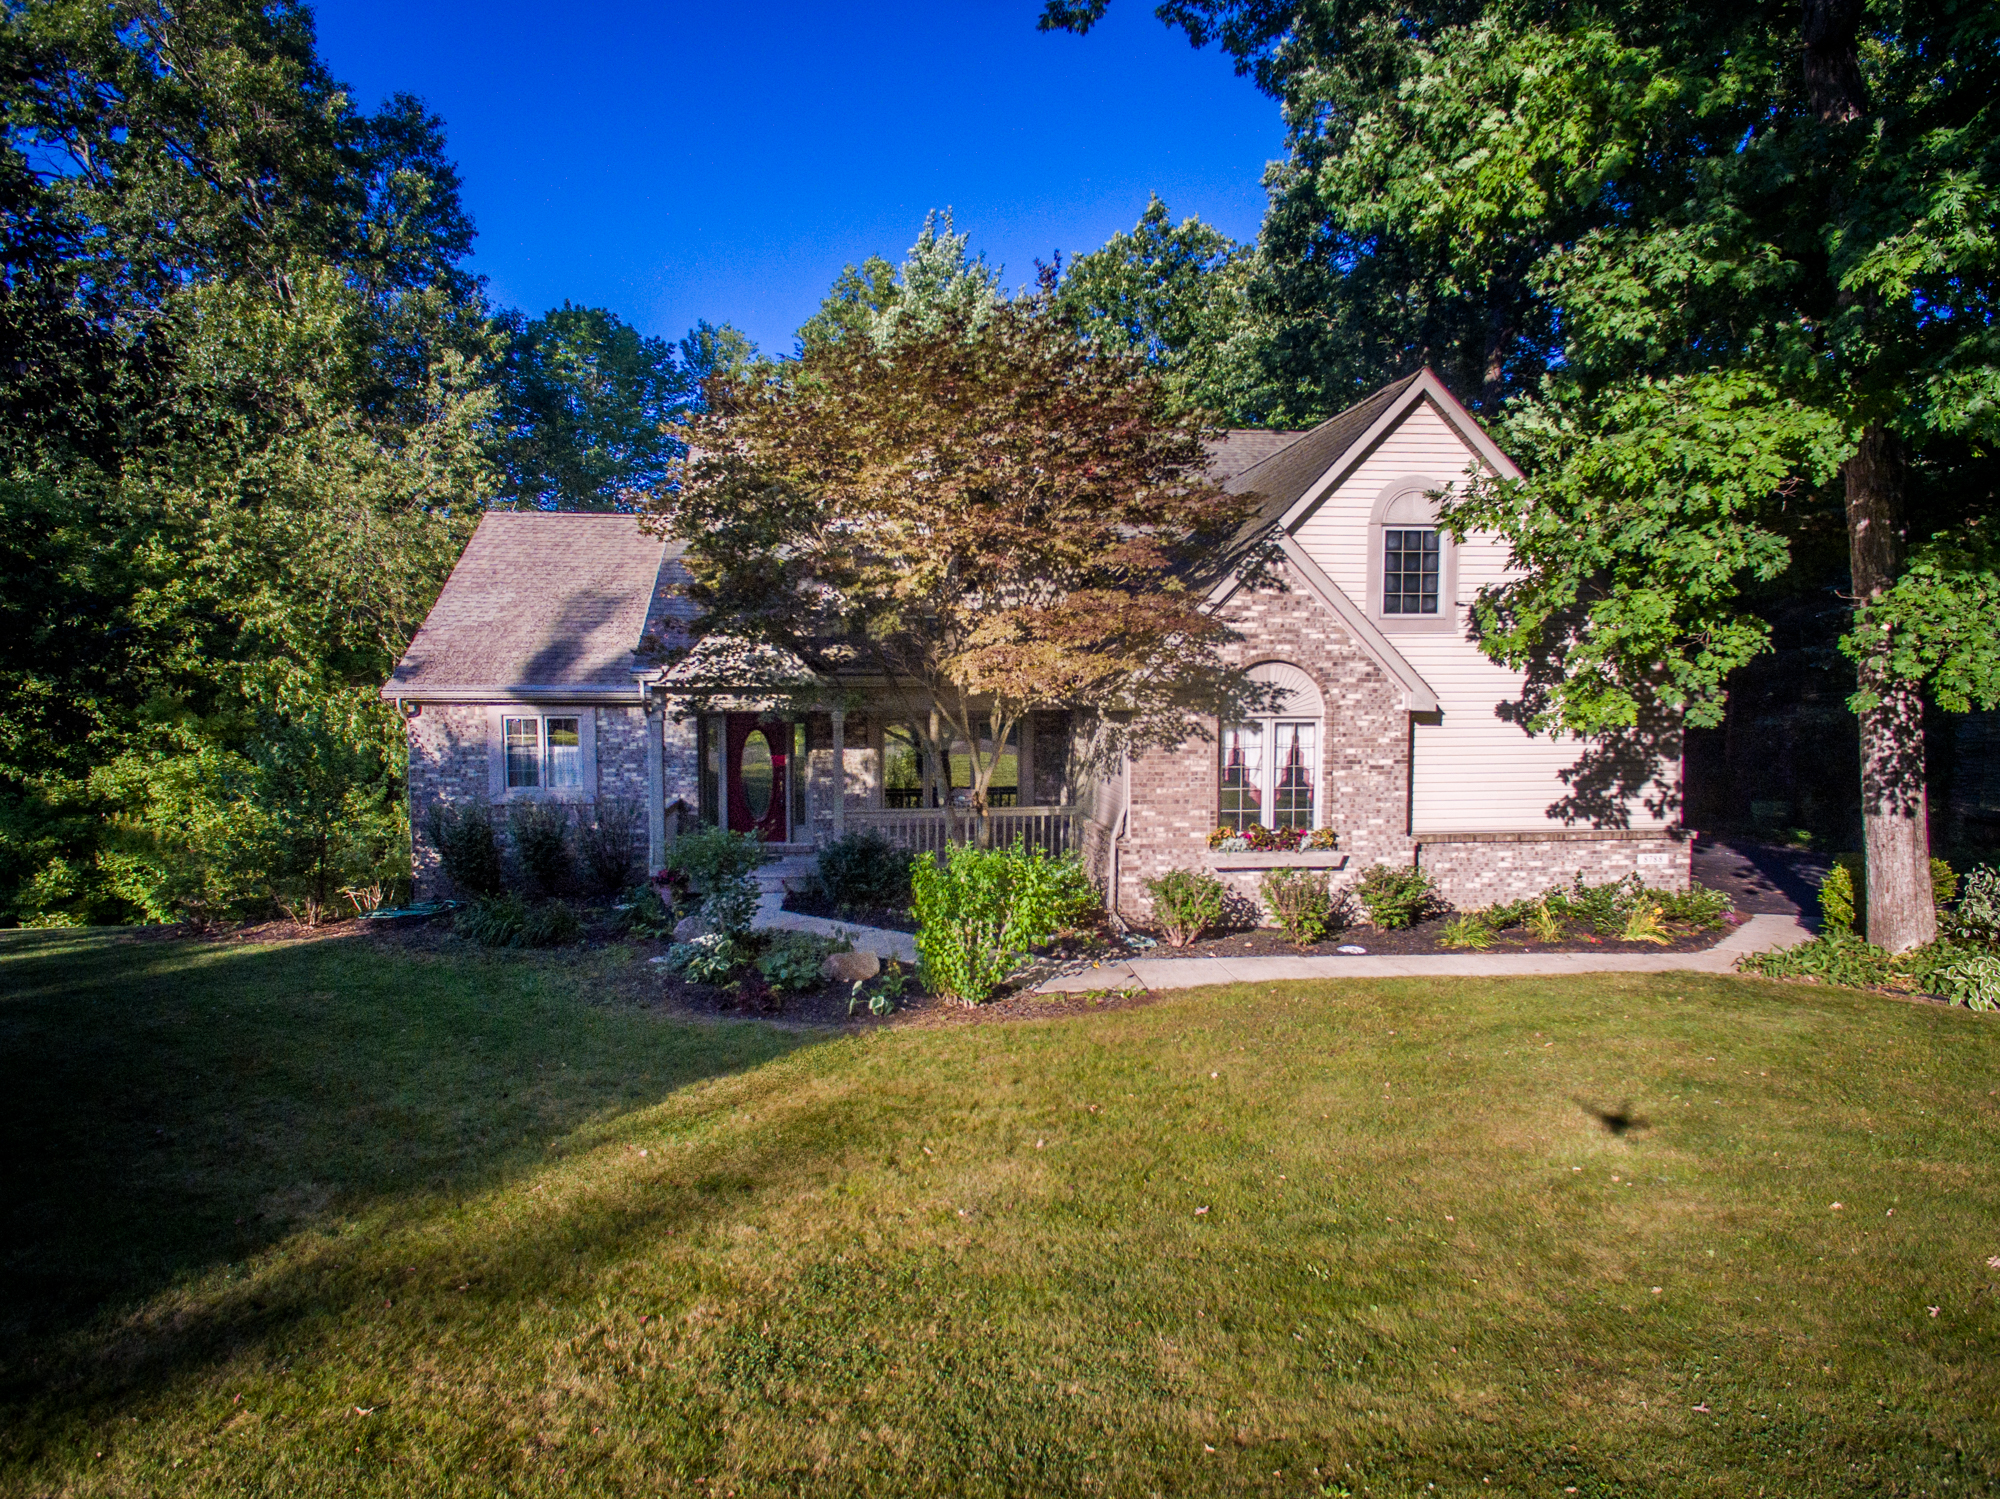 Solitude- Hamburg - $338,599   DOM 27 / Sold for 99.5% of asking price / 17 Showings